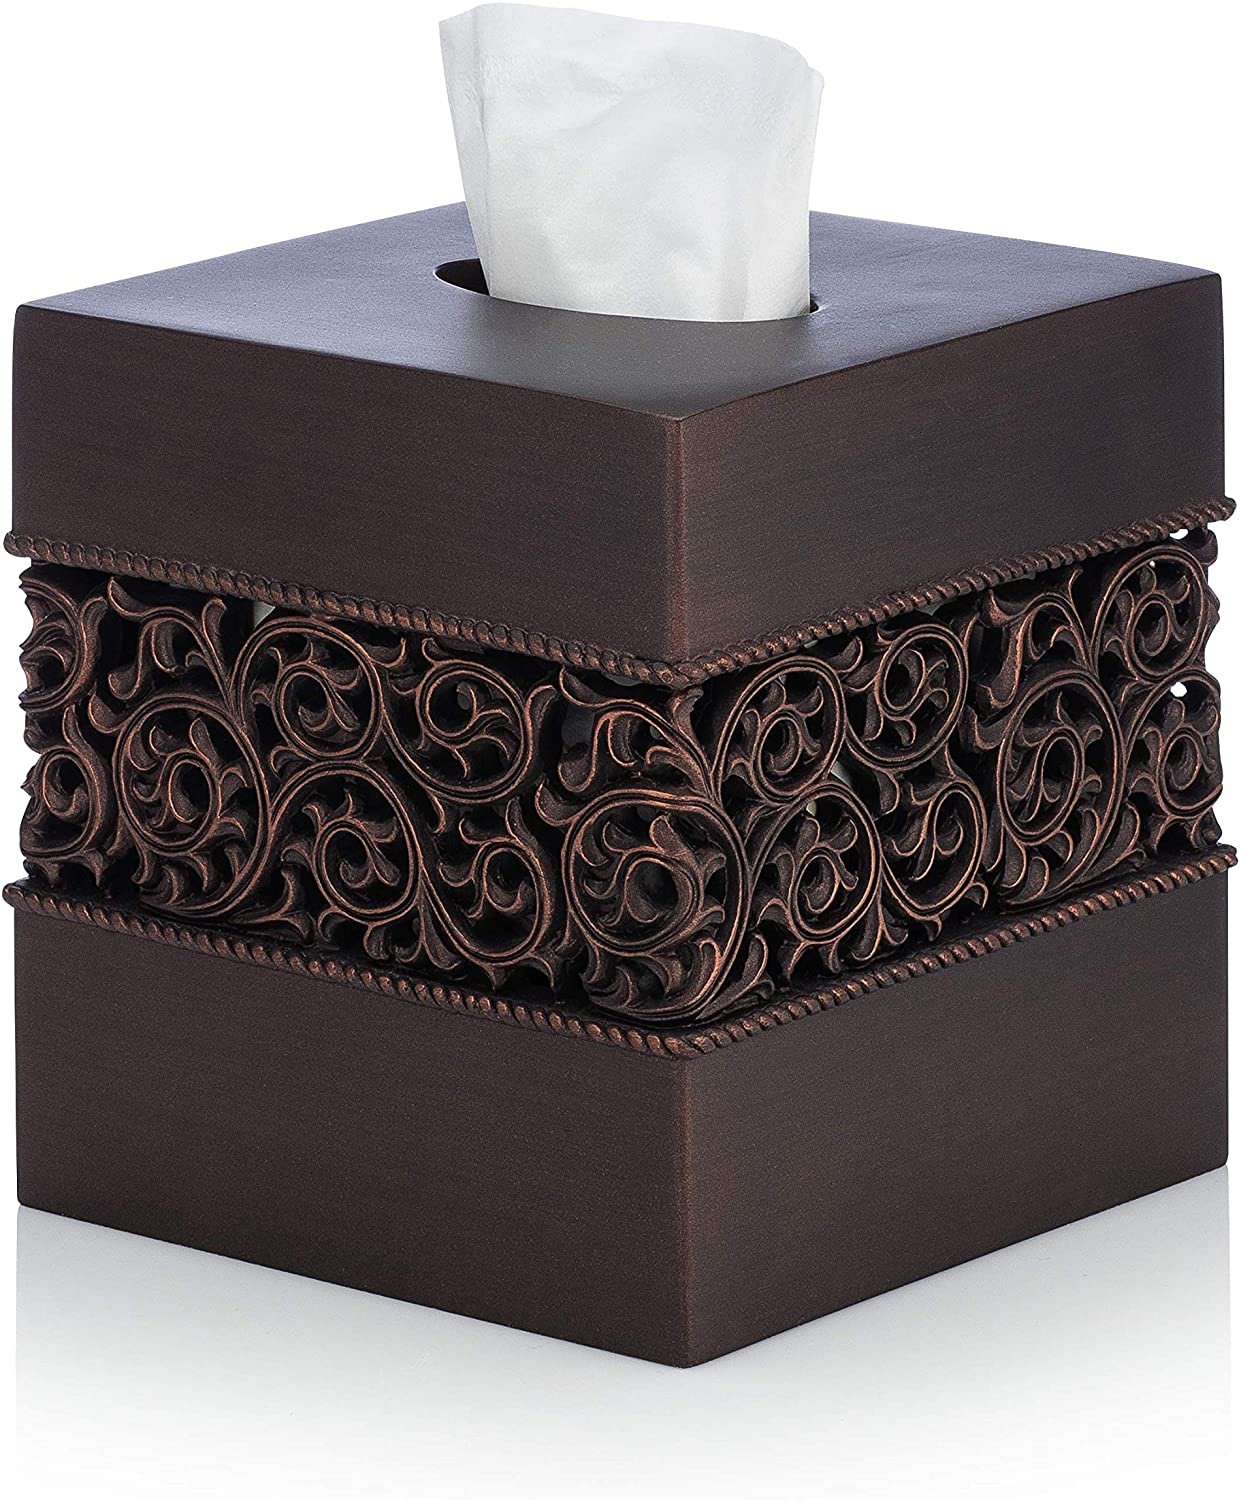 Essentra Home Bronze Finish Square Tissue Box Cover for Bathroom Vanity Counter Tops Also Great for Bedrooms and Living Rooms